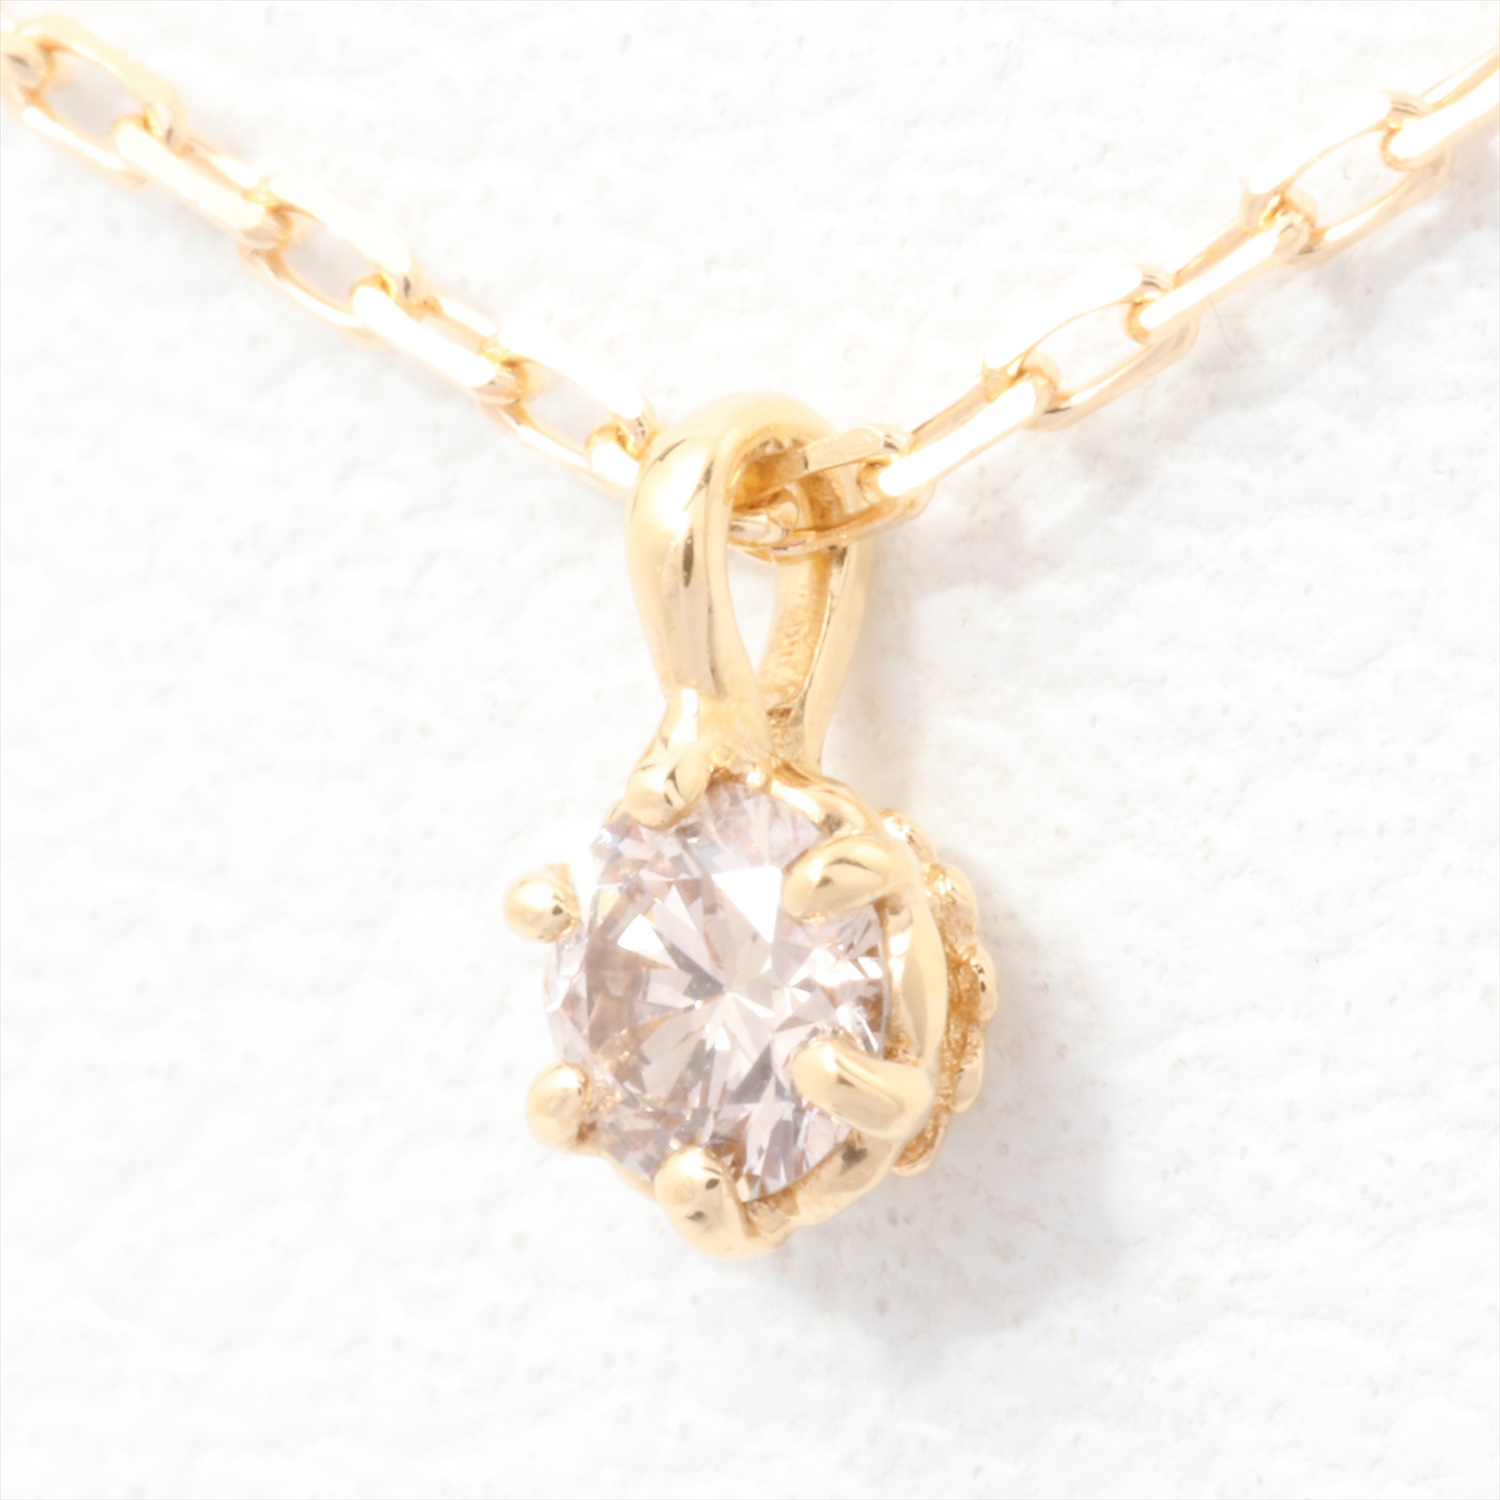 【Pre-Owned】 アガット agete ダイヤモンドネックレス K18YG 0.05ct